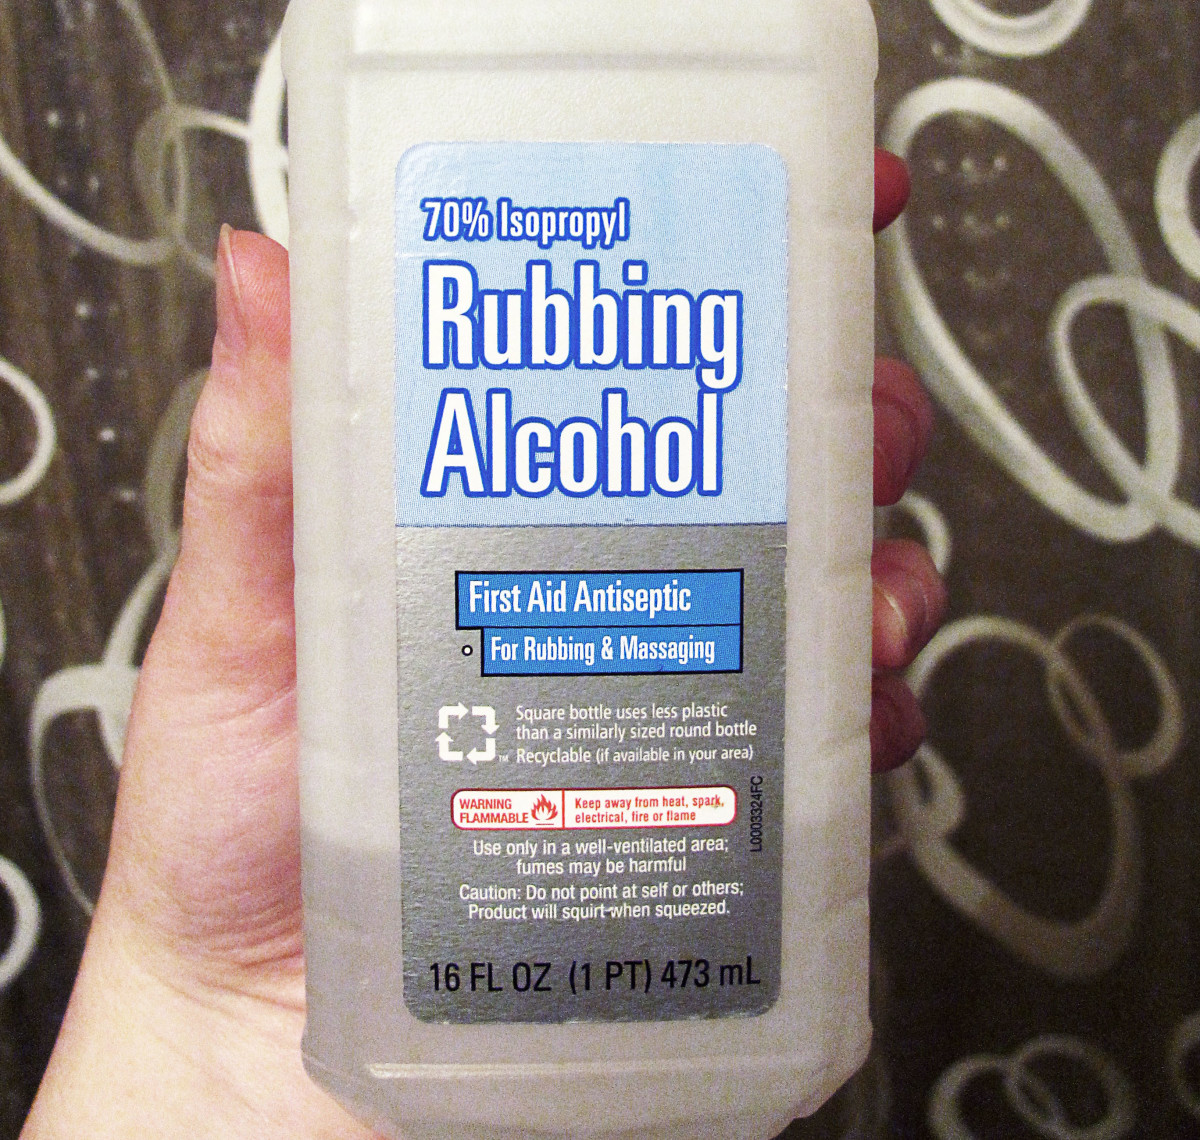 The Strange (But Effective) Uses of Rubbing Alcohol and Hand Sanitizer That Come In Handy